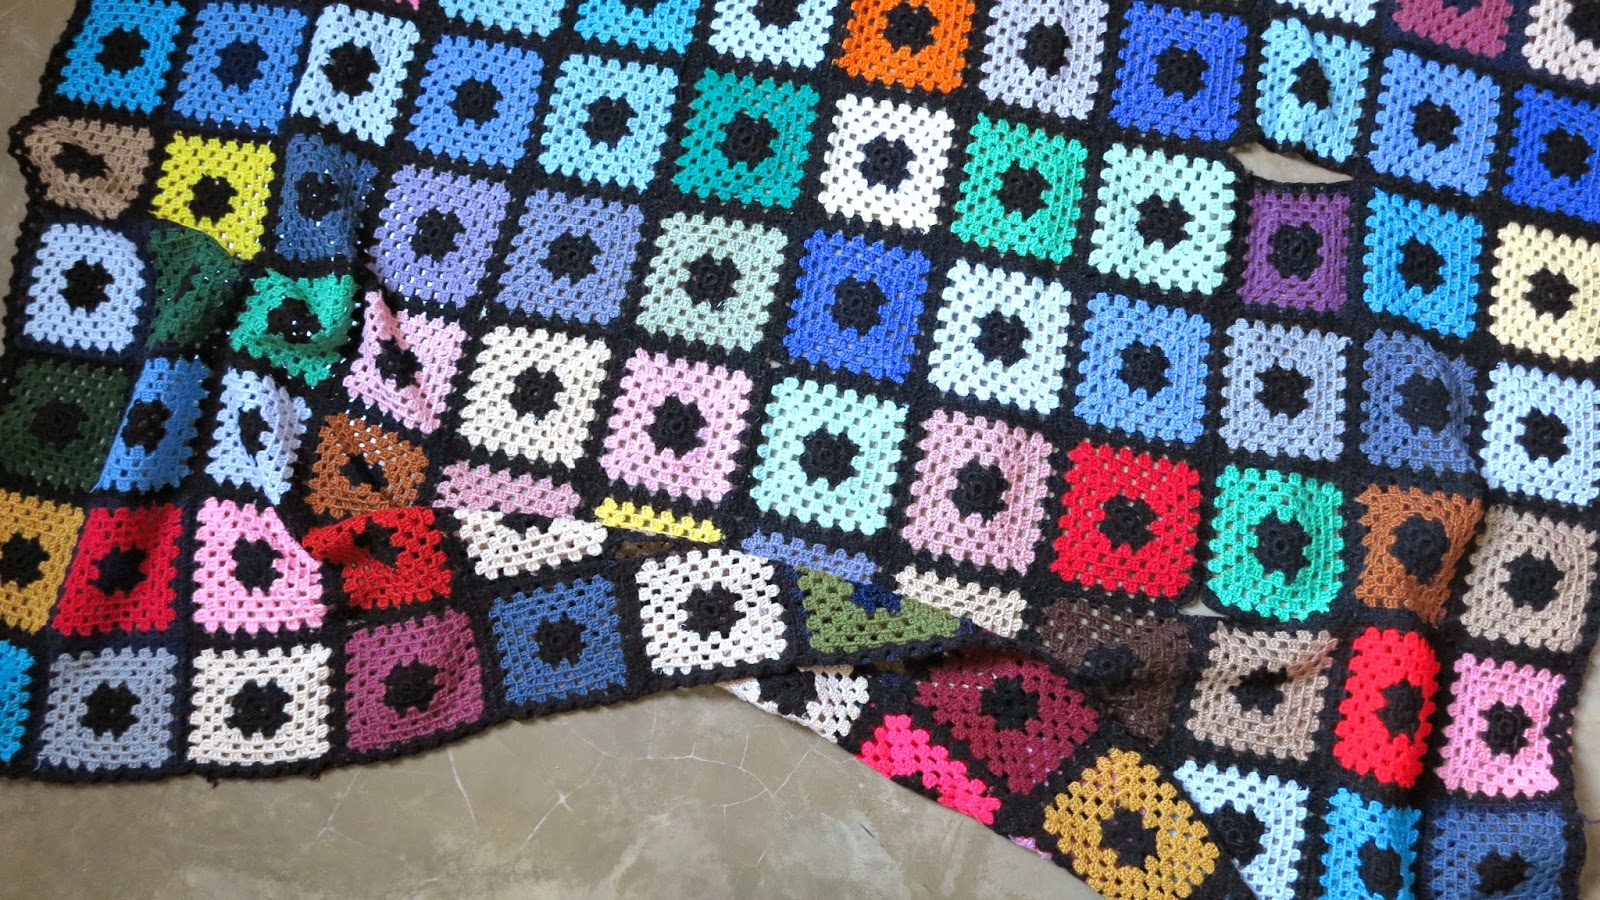 ByHaafner, vintage granny square blanket, bright colours, crochet